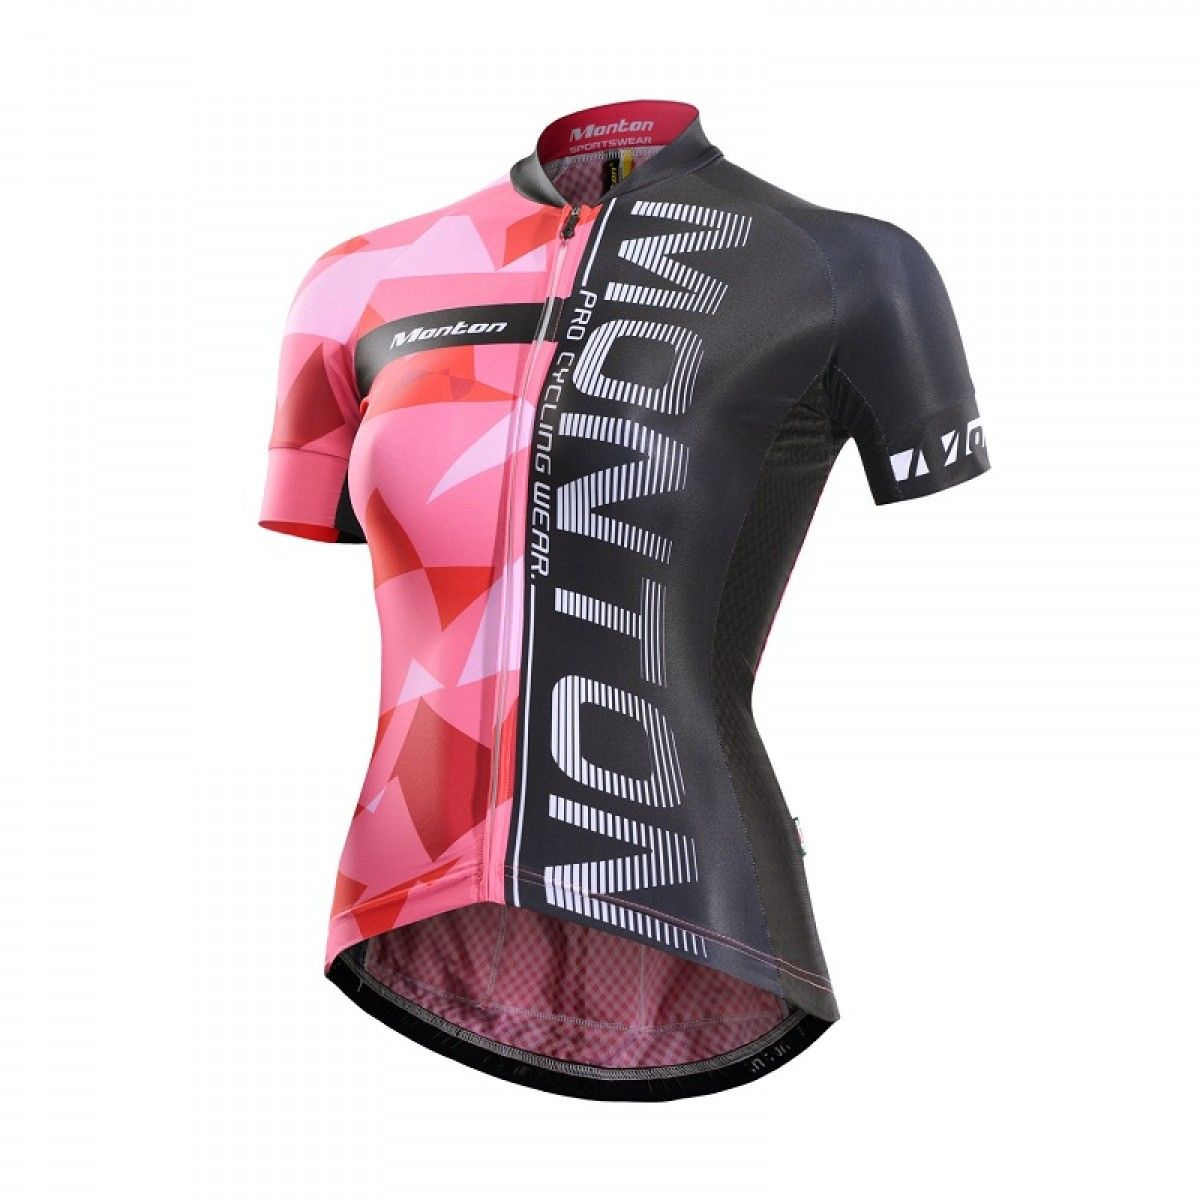 Womens Cycling Jersey Womens Cycling Clothes Cycling Outfit